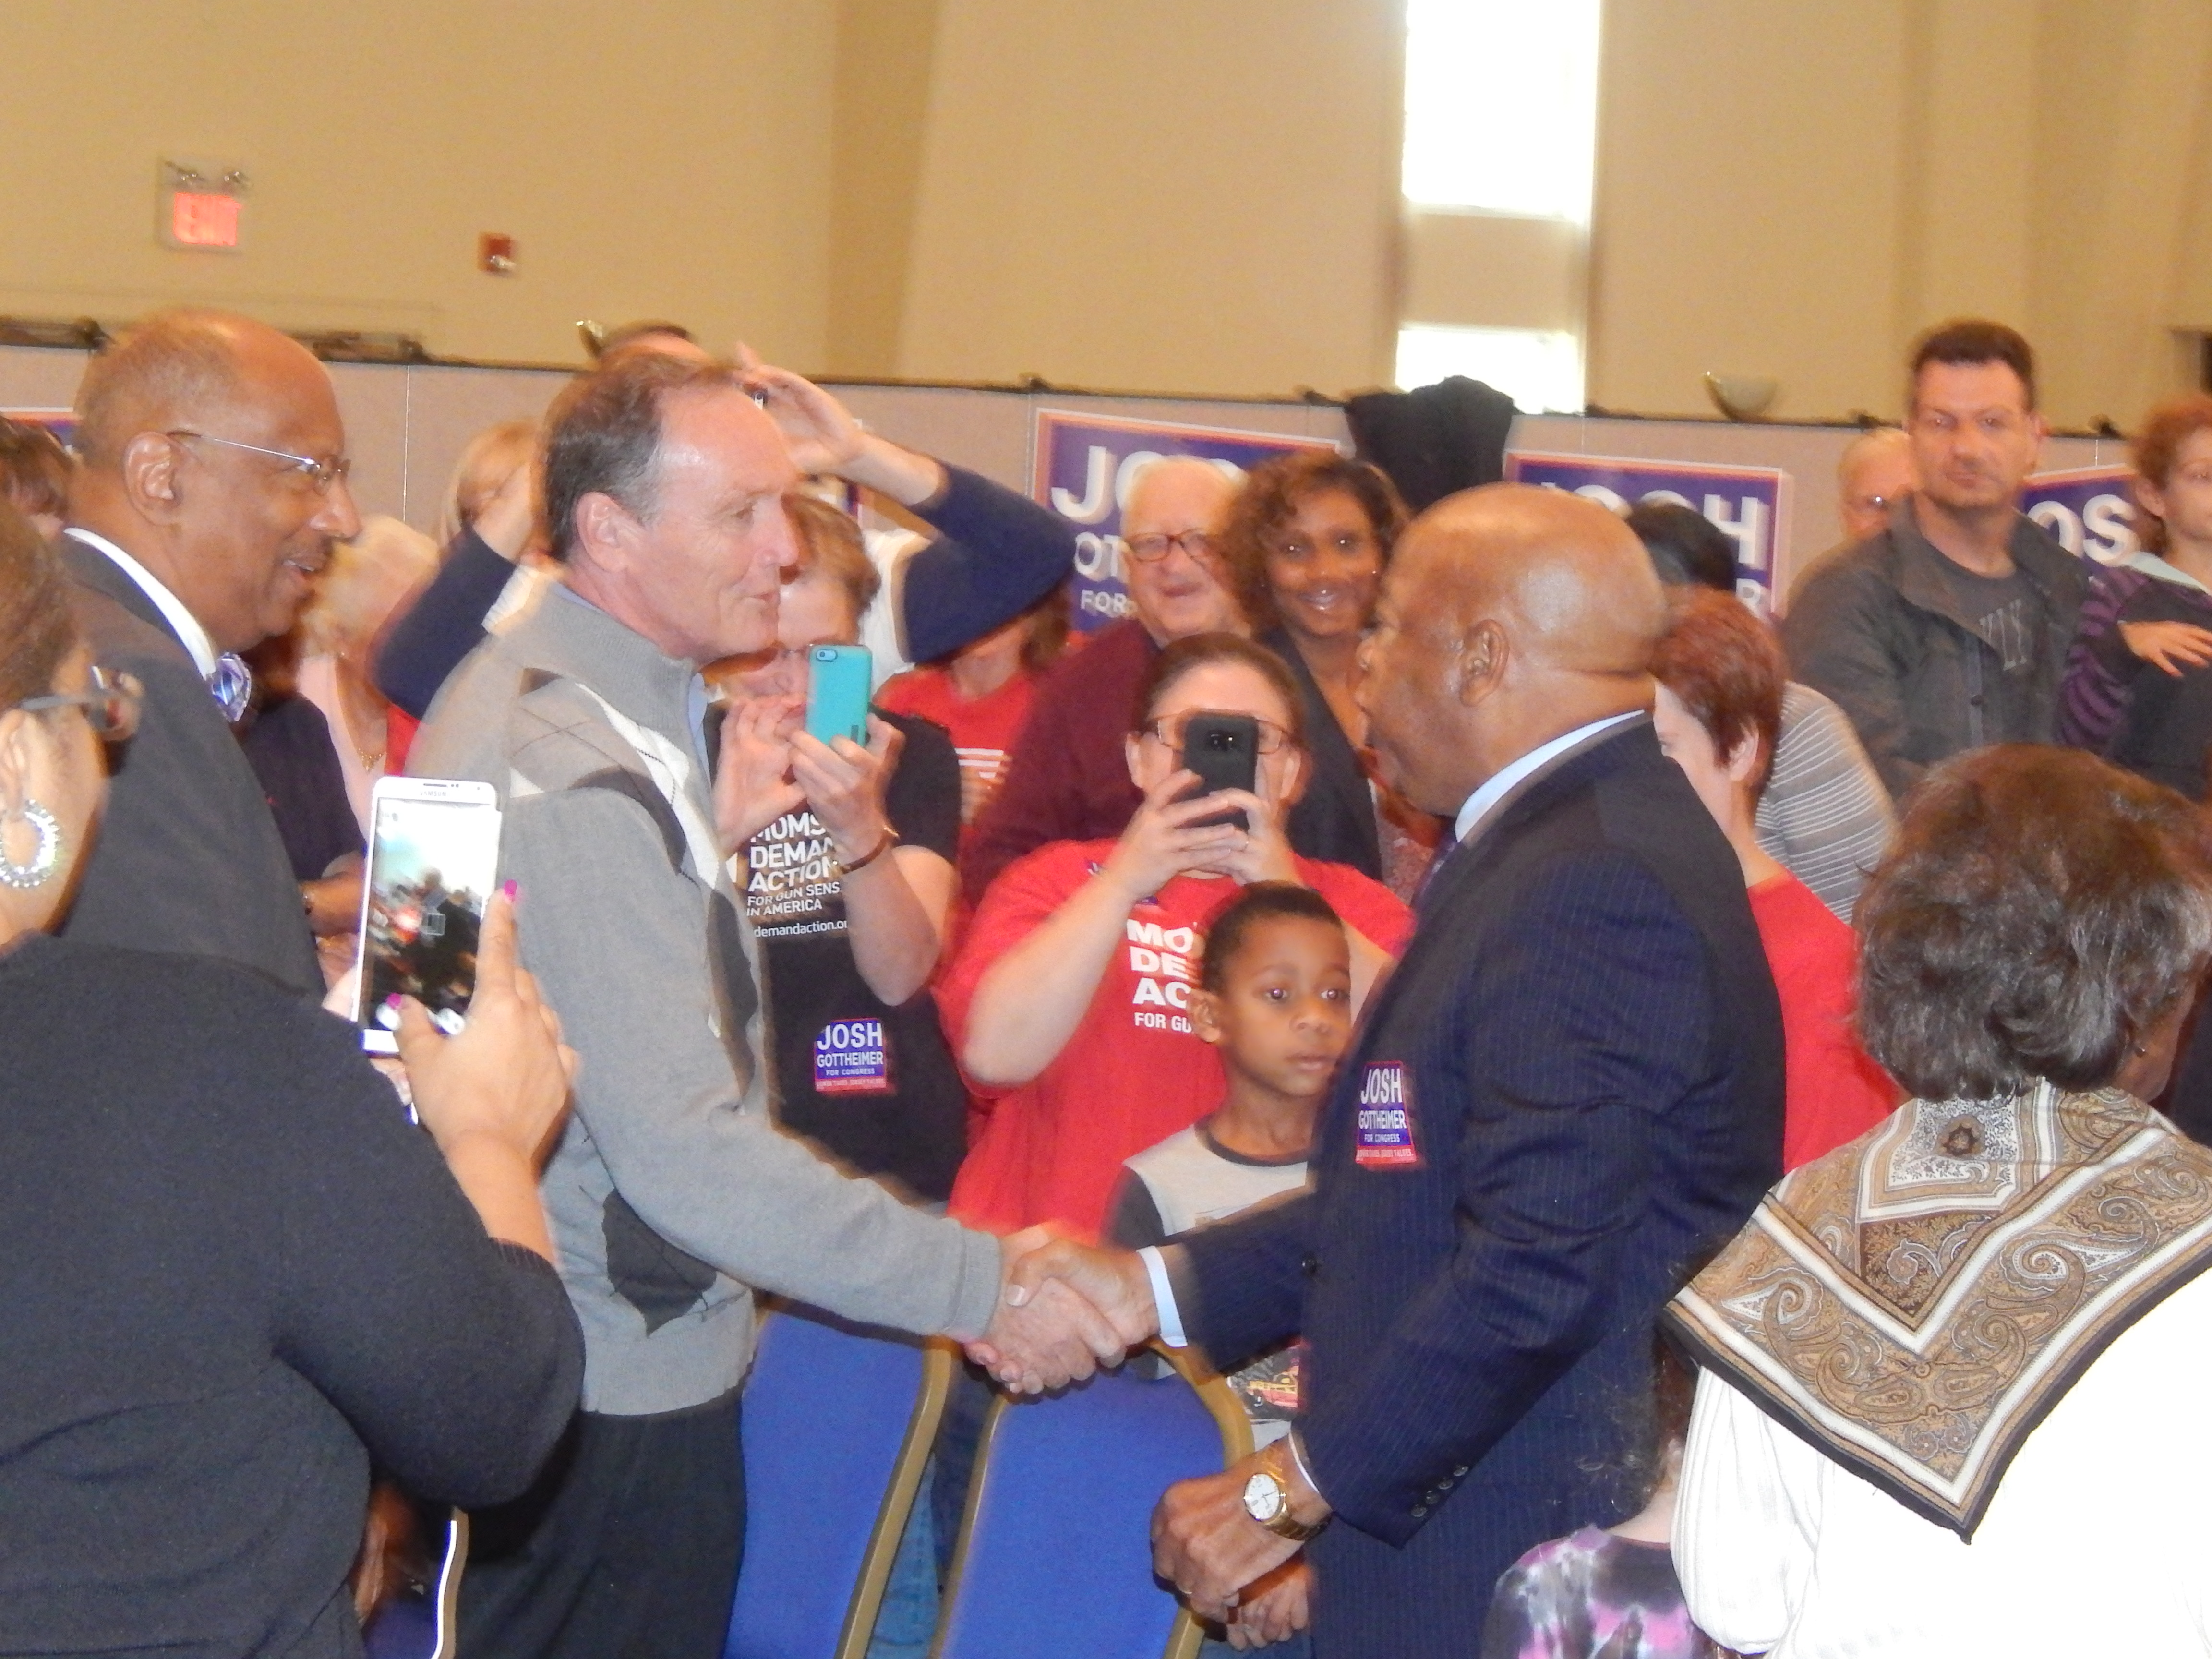 The congressman is welcomed to Bergen County by Assemblyman Tim Eustace (D-Maywood).